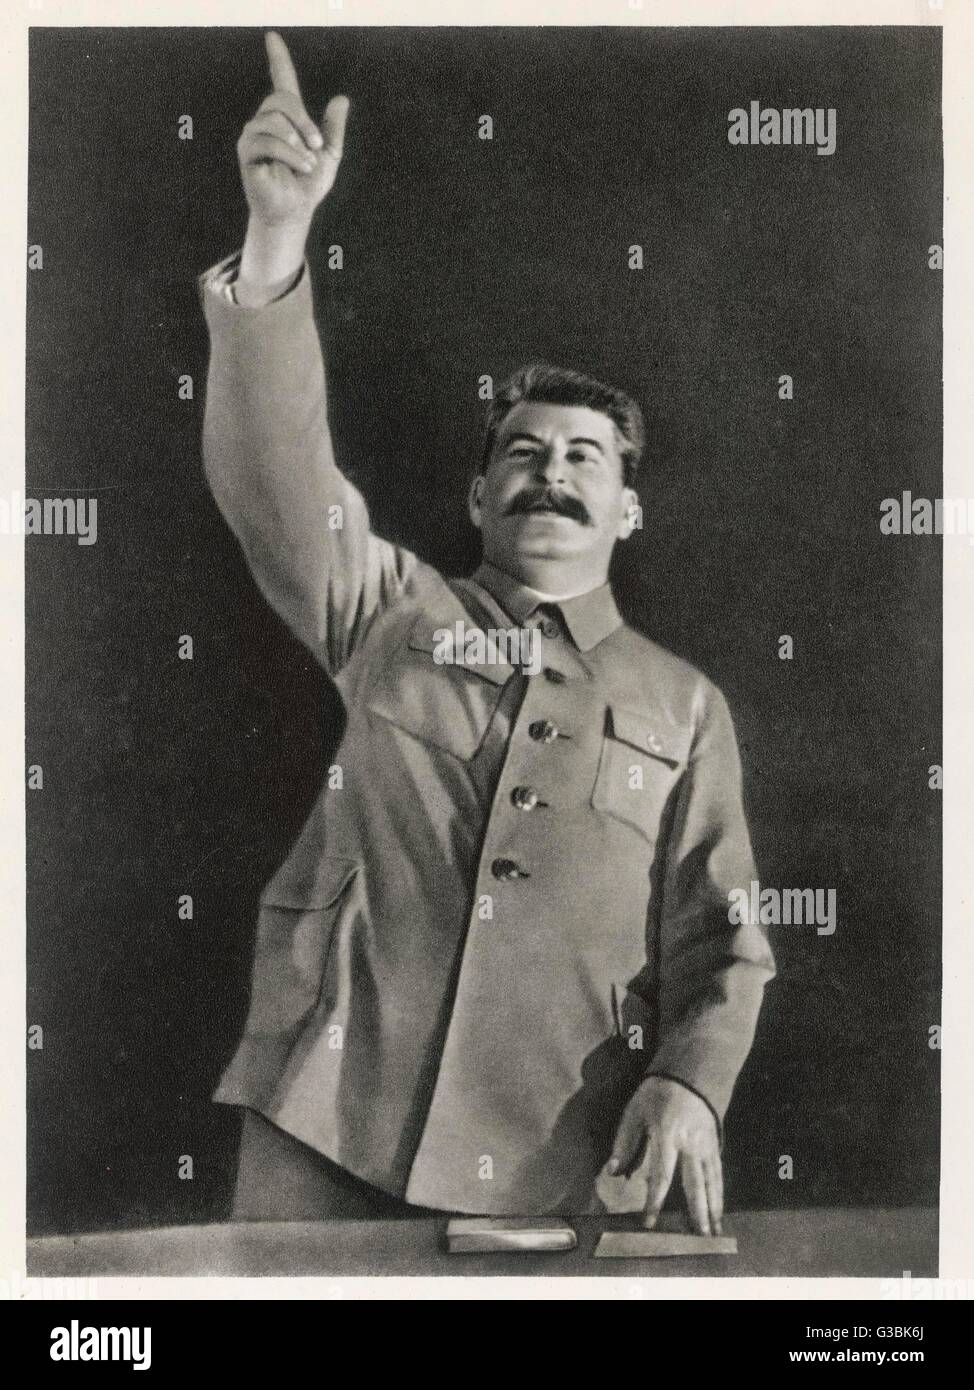 JOSEF STALIN orating         Date: 1879-1953 - Stock Image